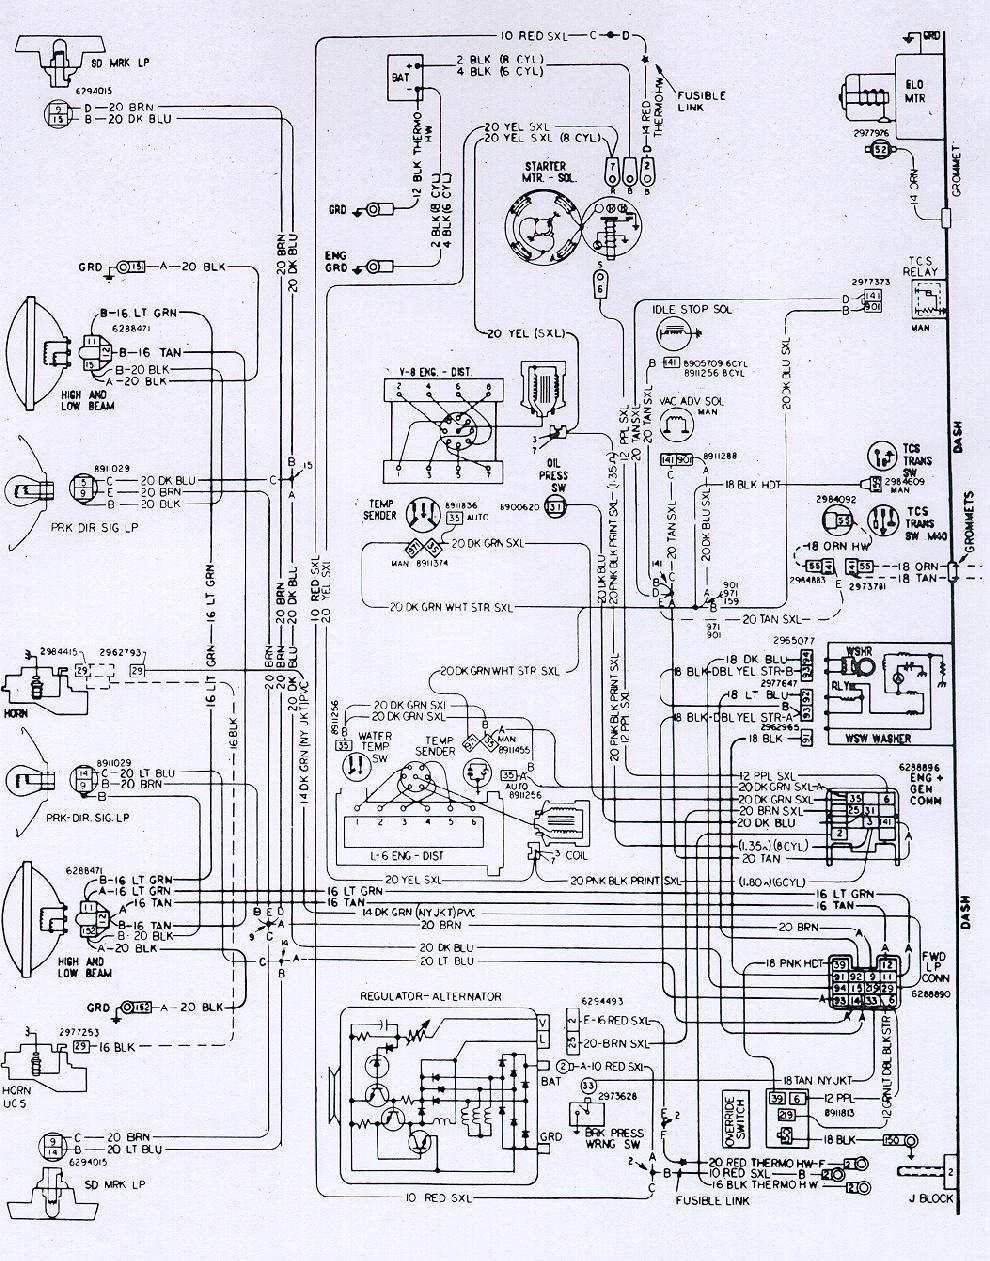 medium resolution of 74 international wiring diagram wiring diagram forward 74 international truck wiring harness